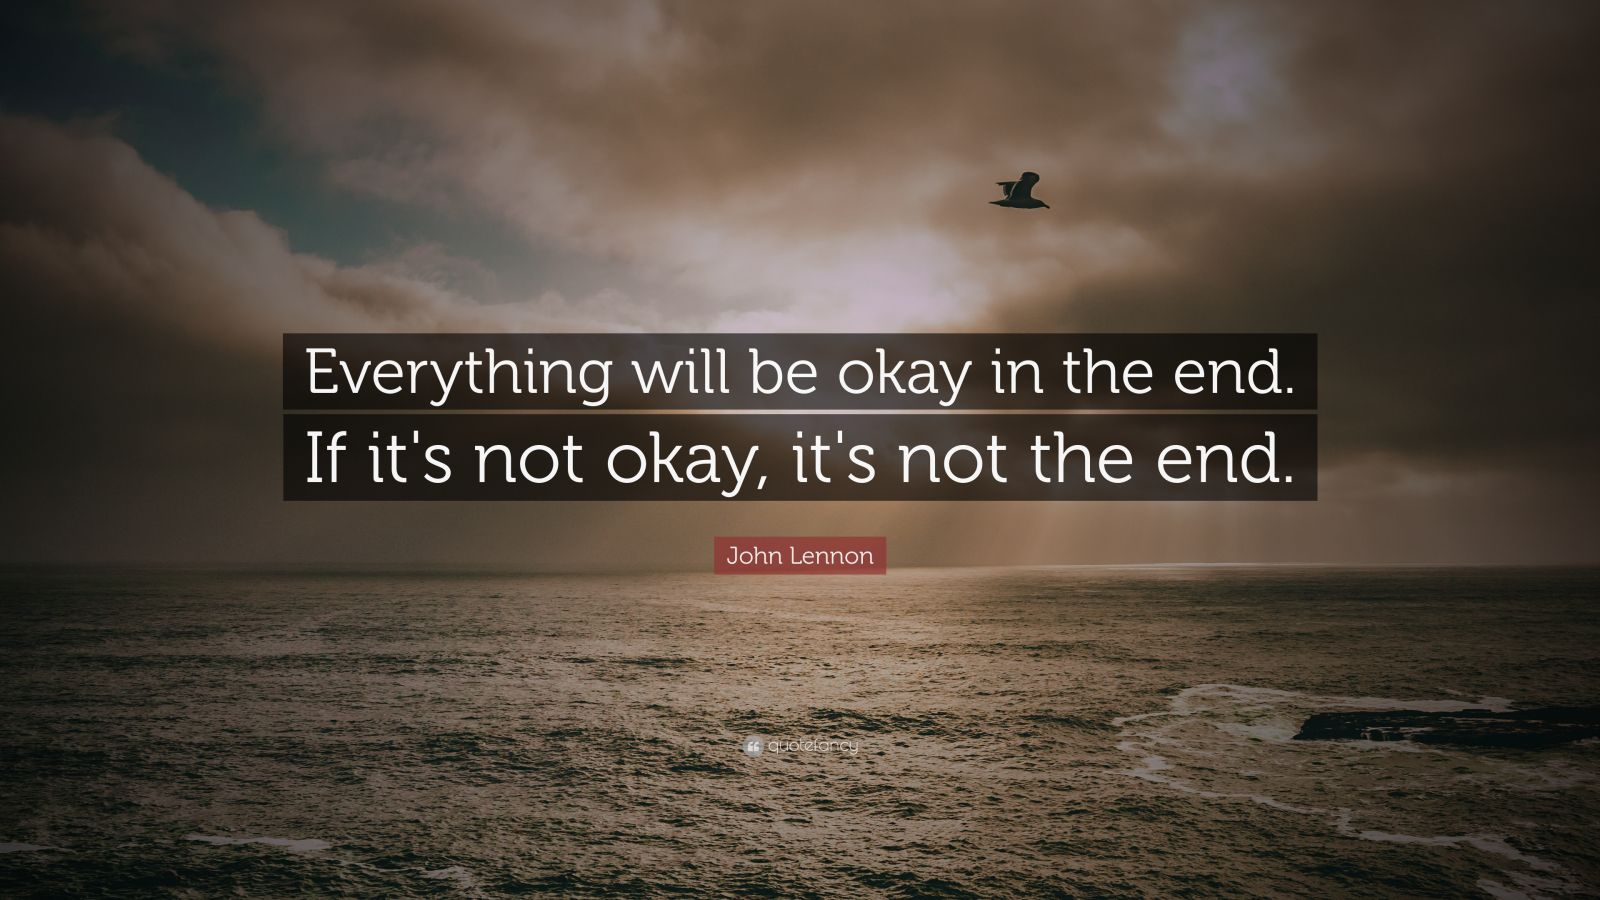 john lennon quote everything will be okay in the end if it 39 s not okay it 39 s not the end 41. Black Bedroom Furniture Sets. Home Design Ideas